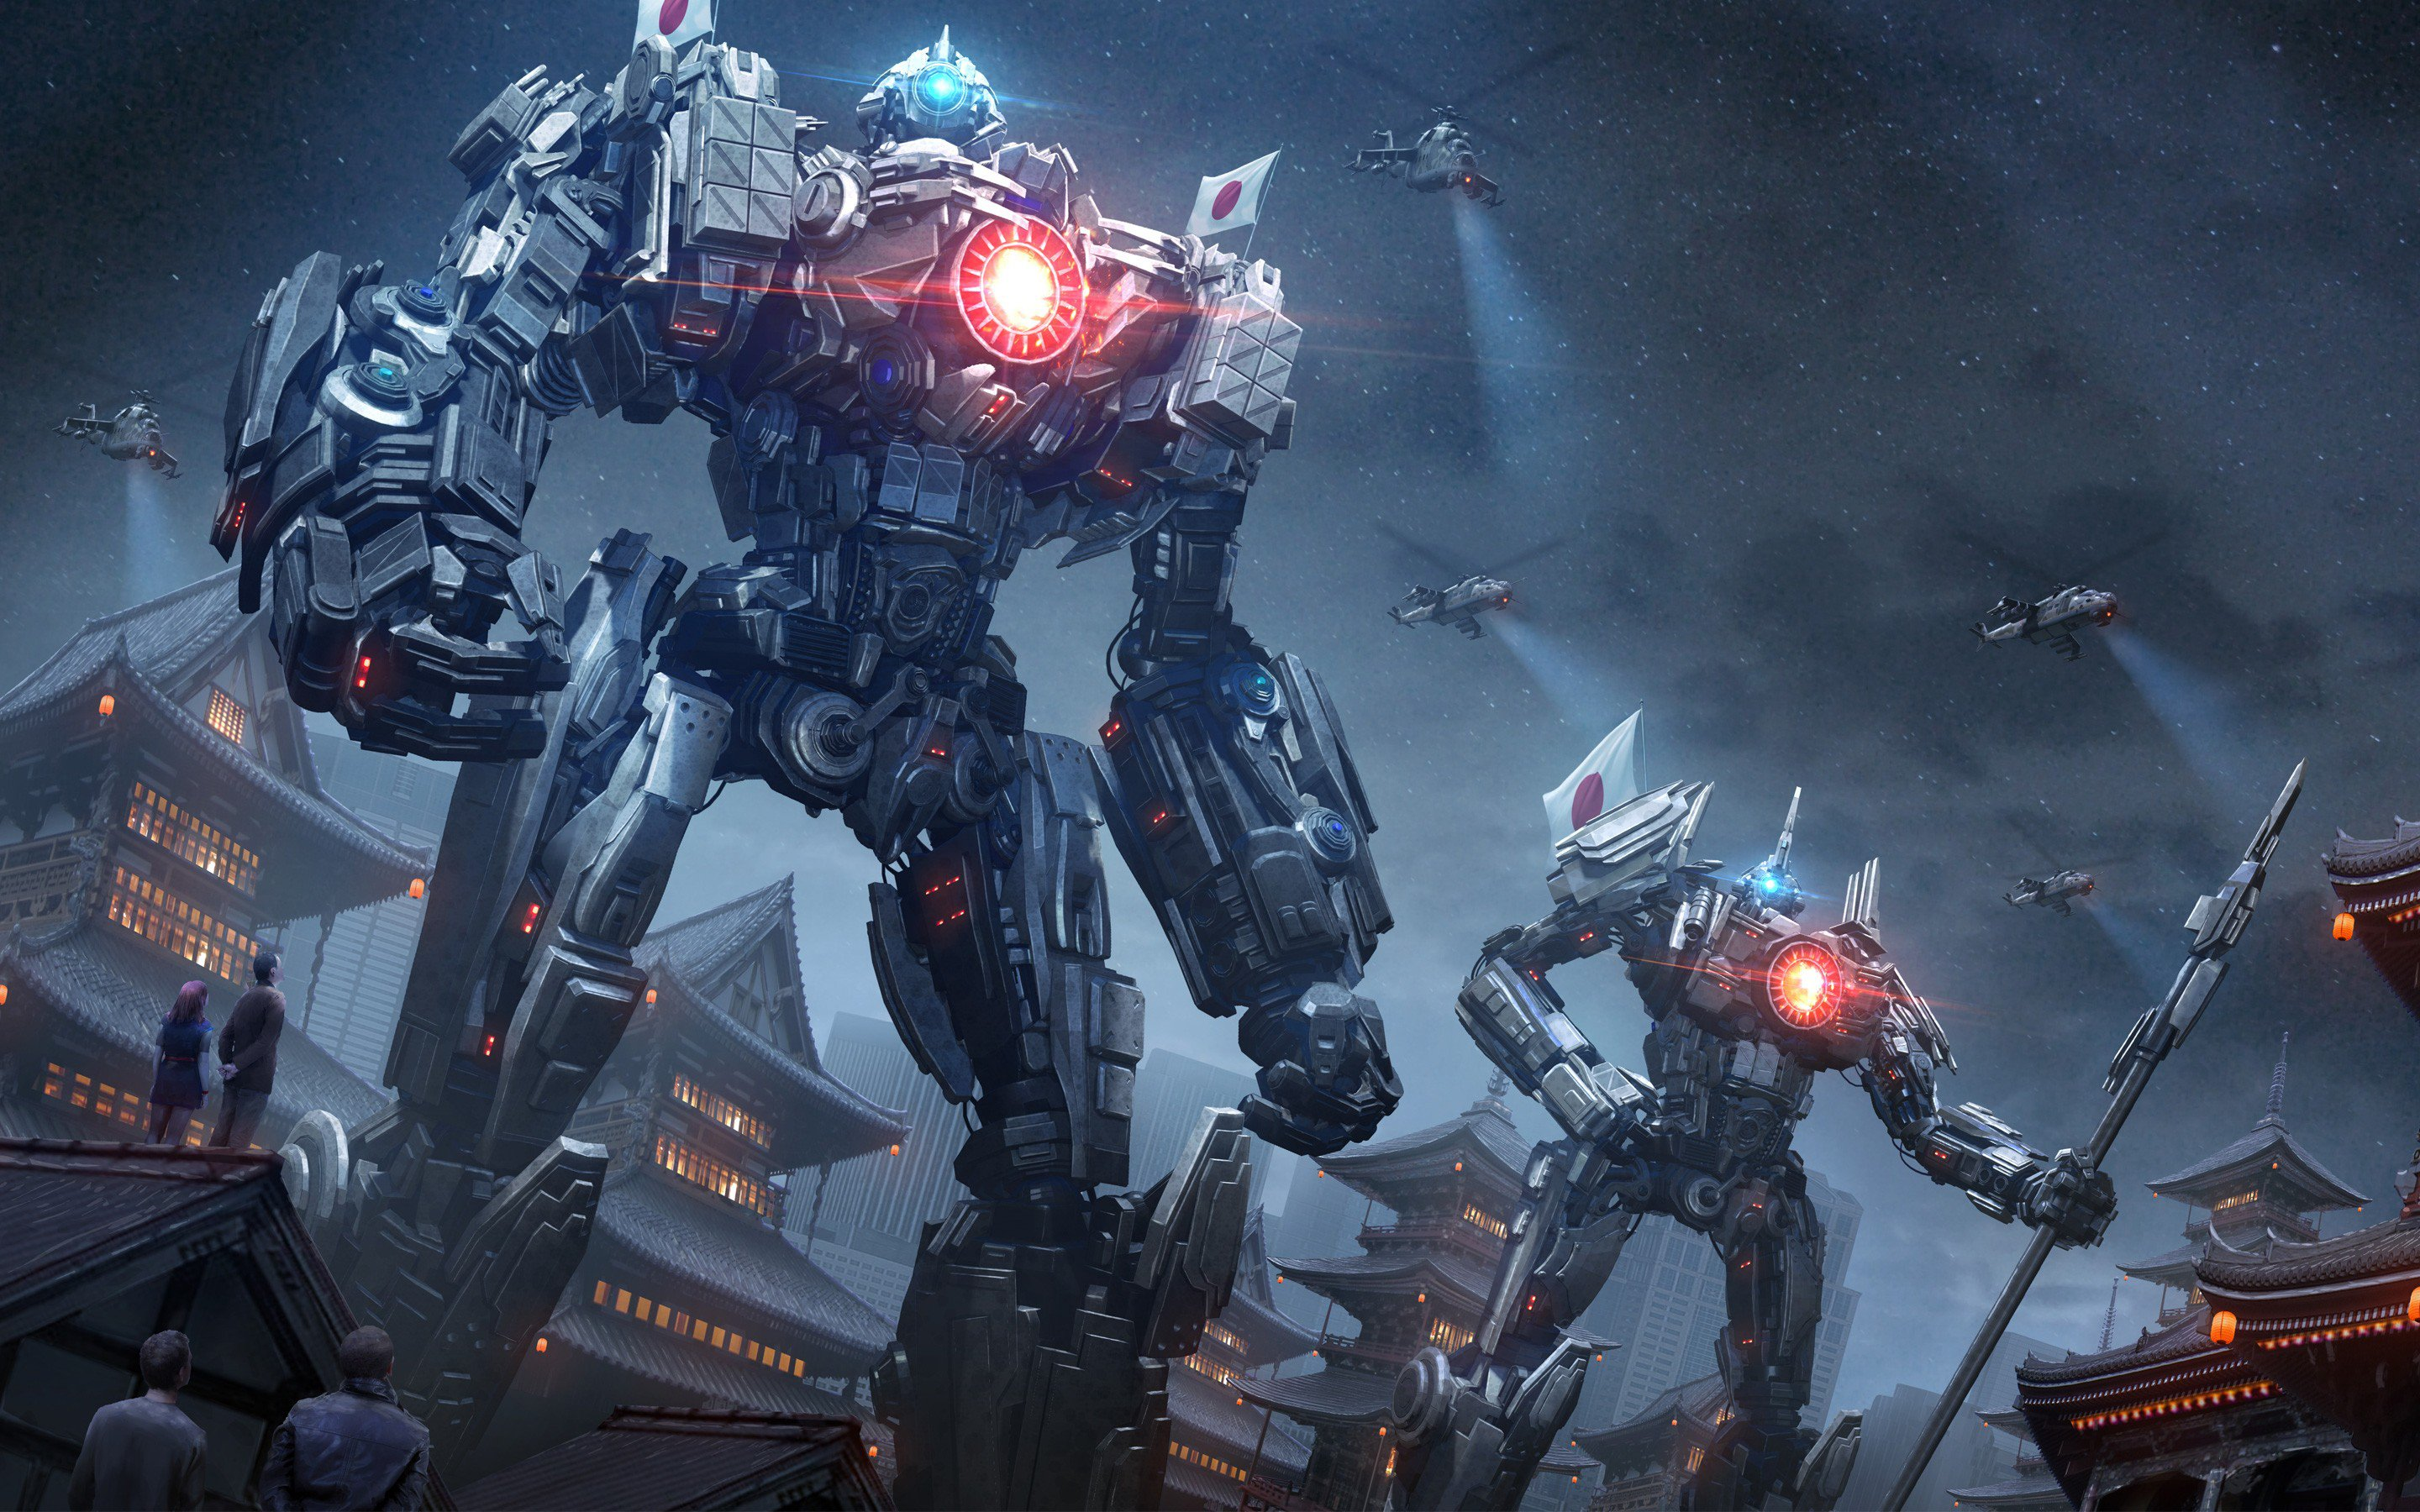 Group Of Pacific Rim Concept Wallpaper